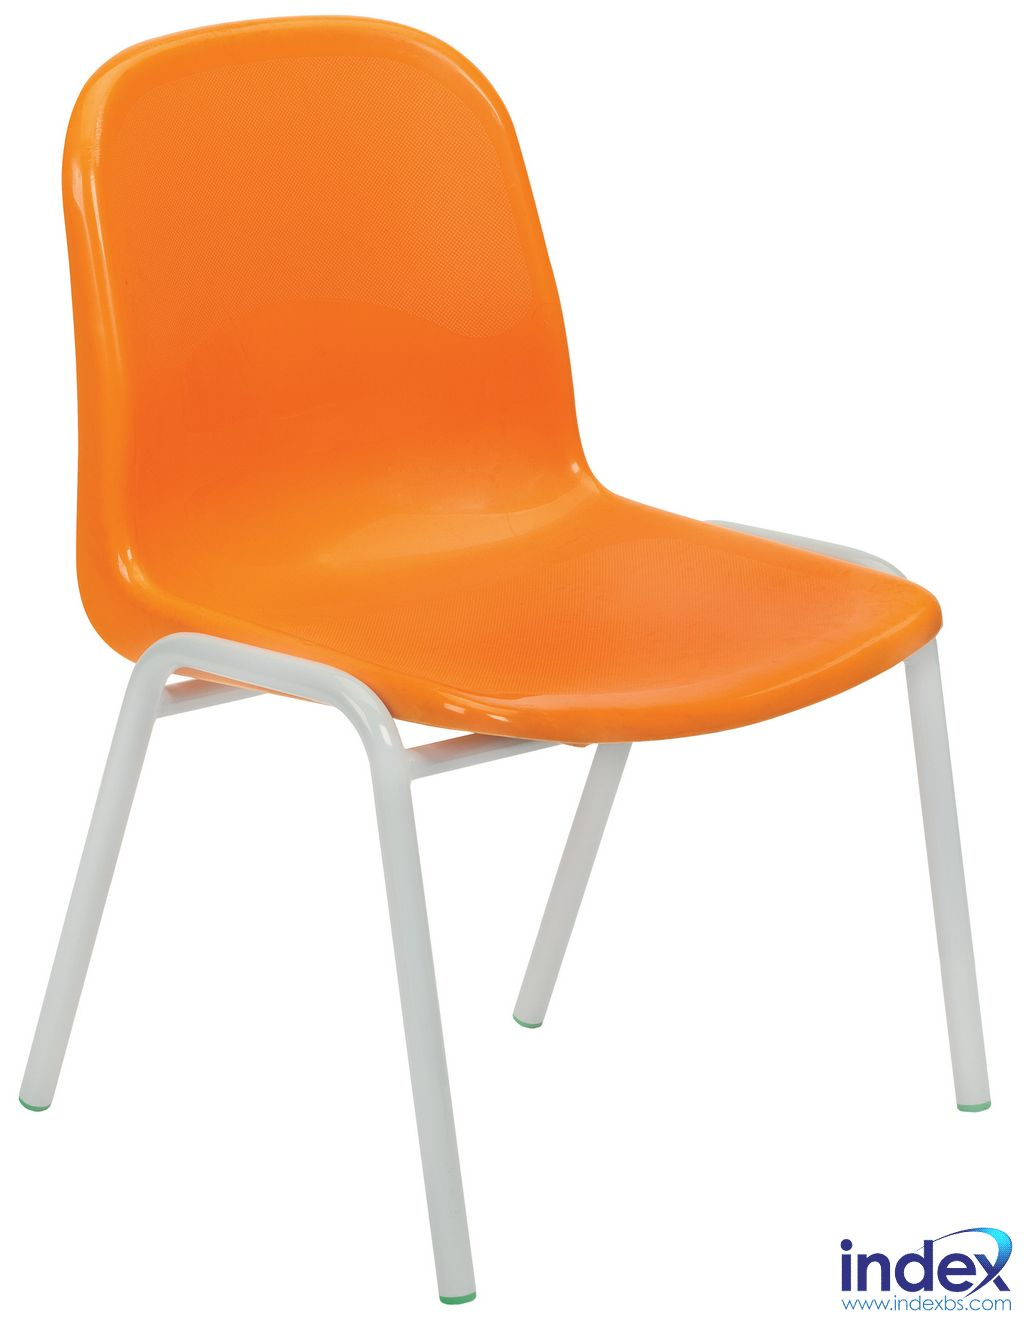 Proform Tomeg Chair Range